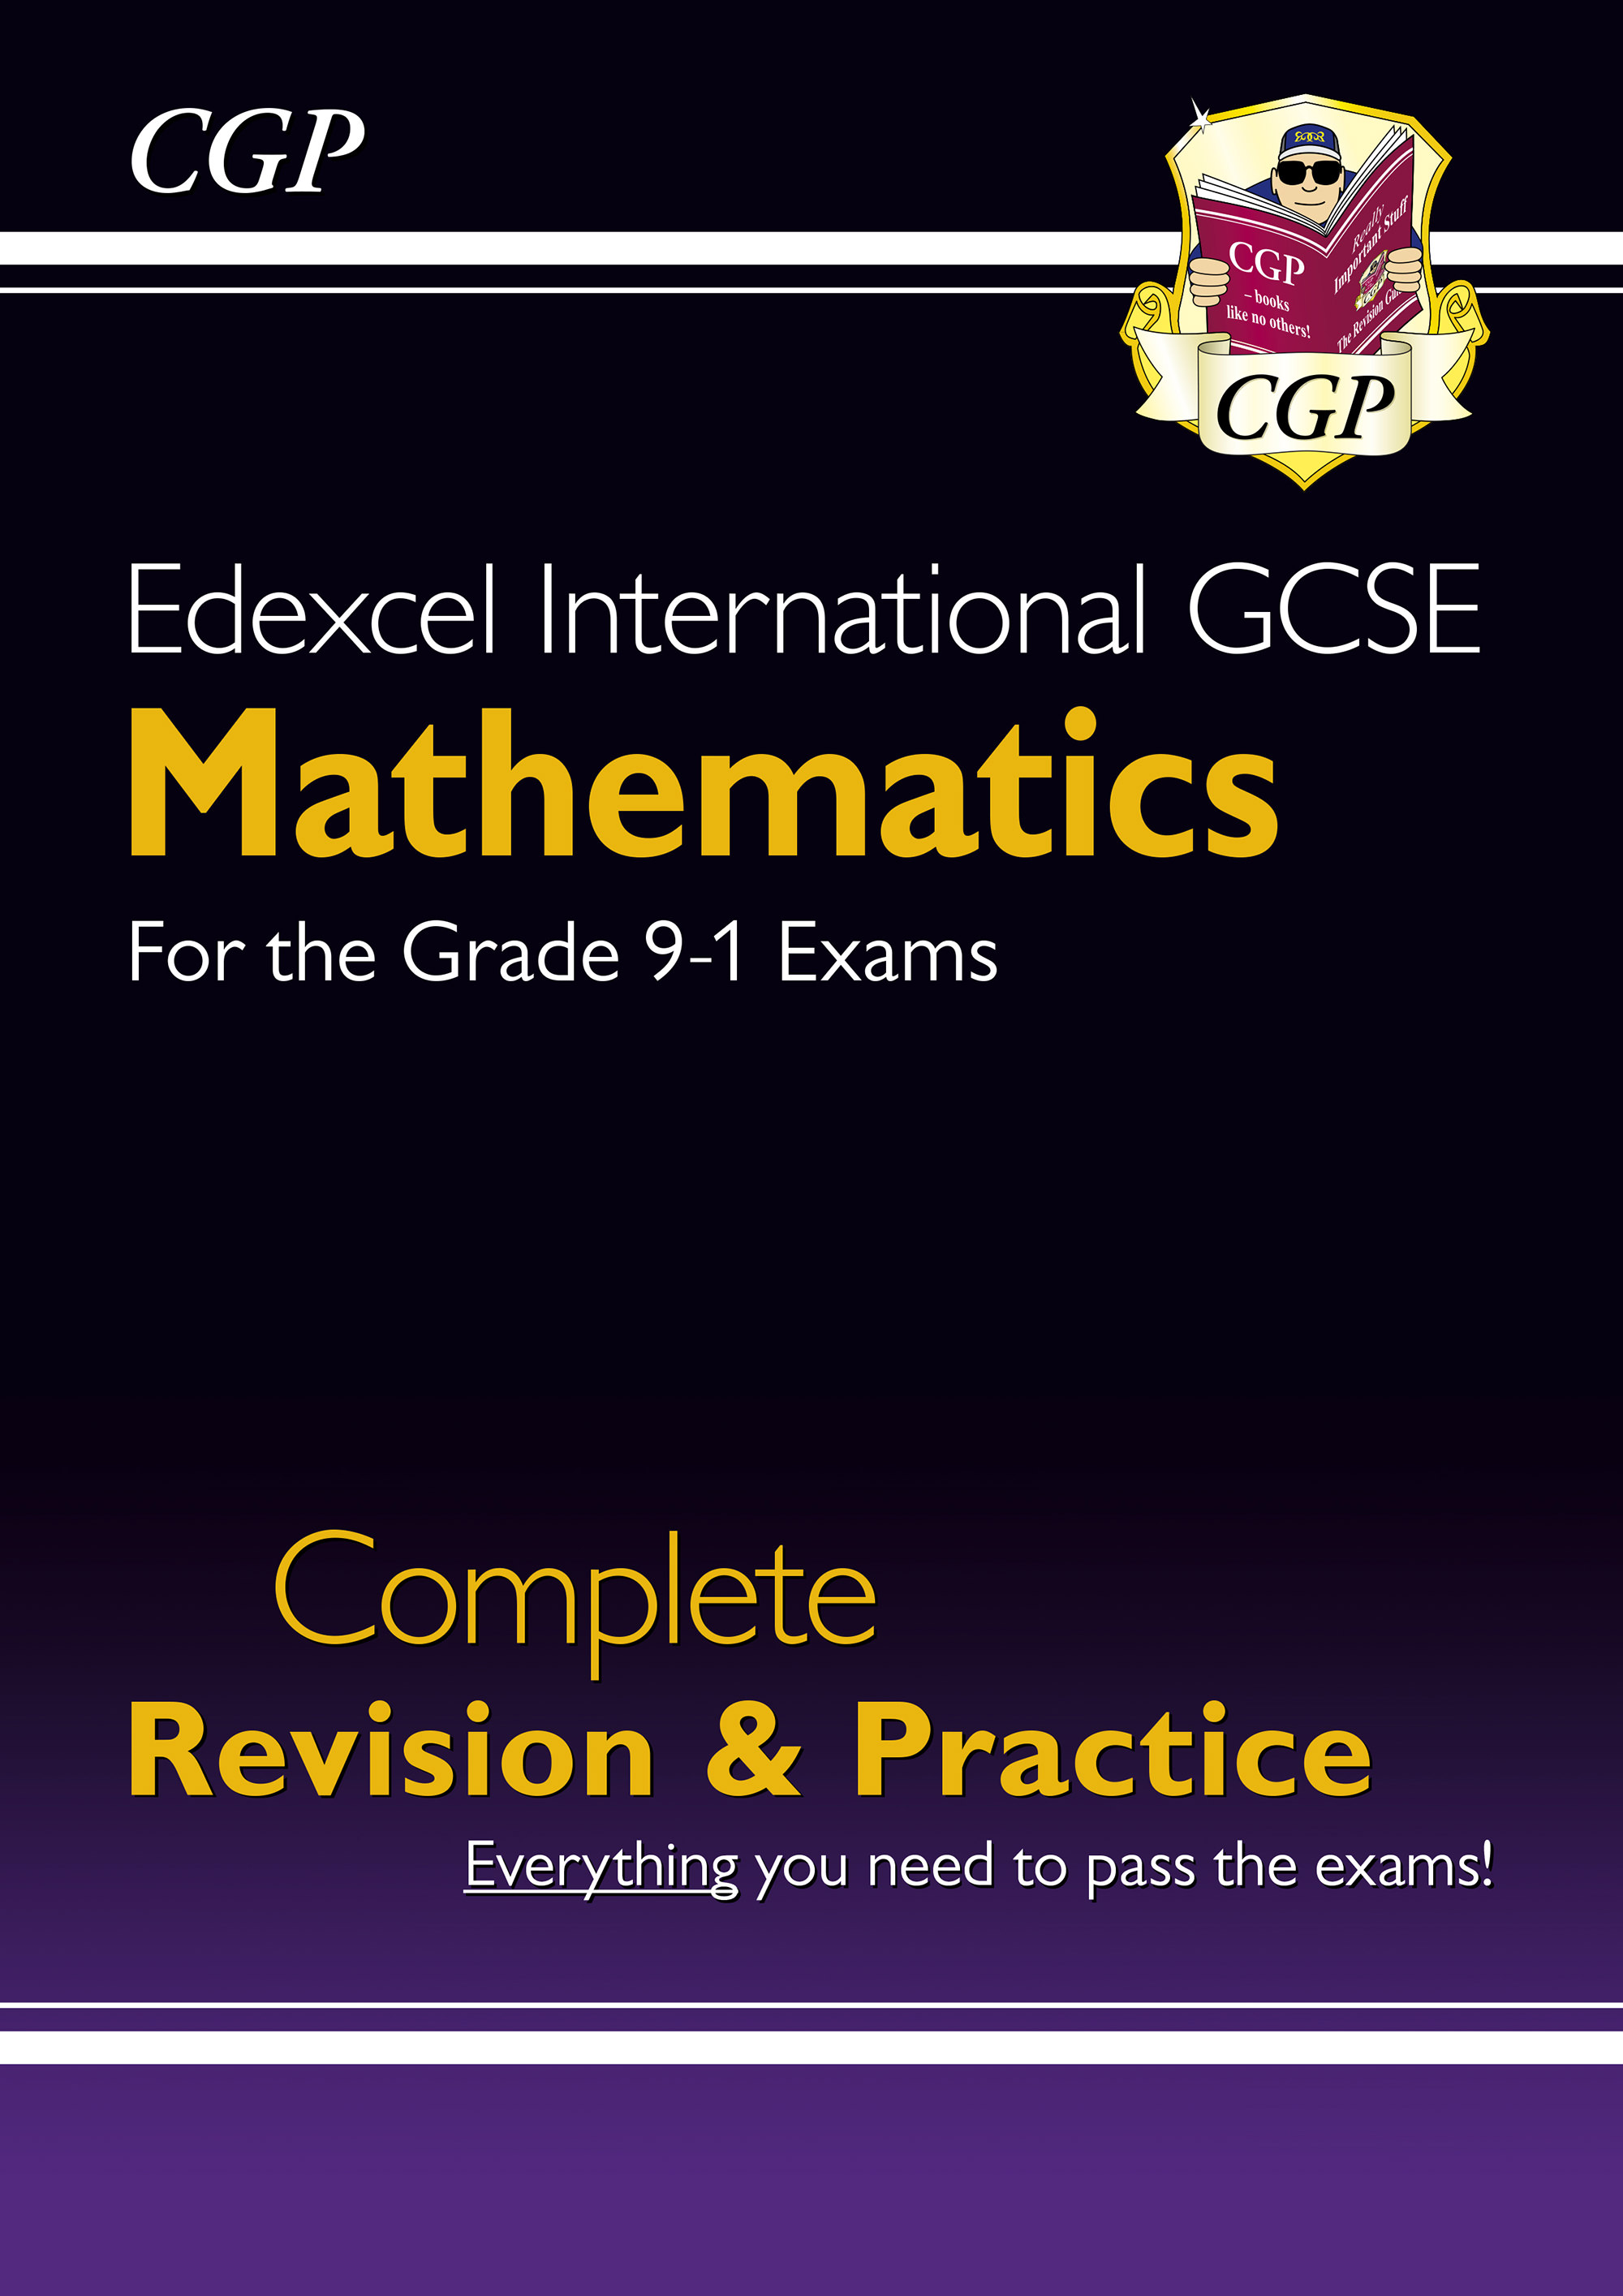 MESI41DK - New Edexcel International GCSE Maths Complete Revision & Practice - Grade 9-1